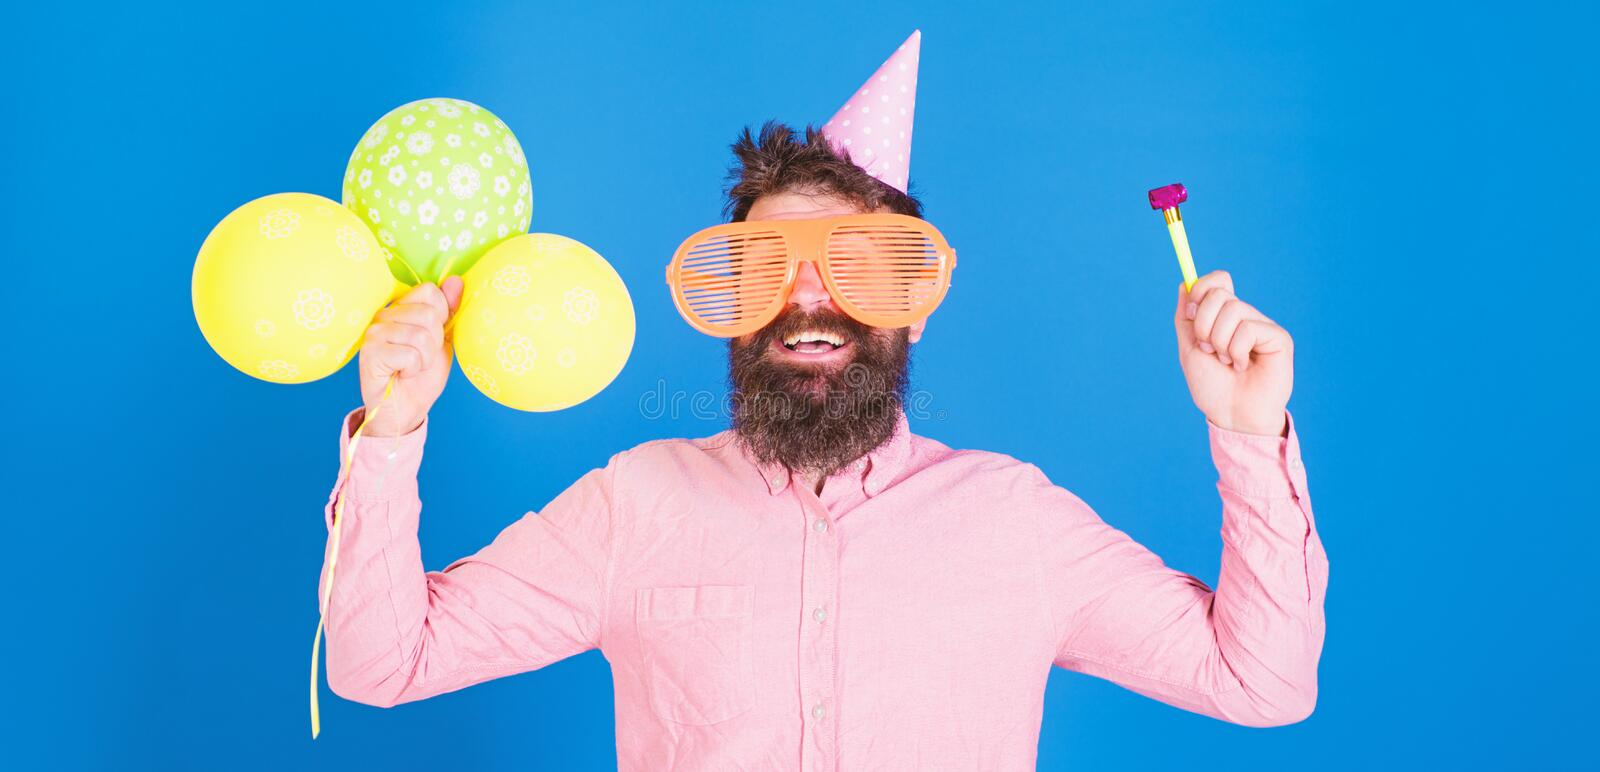 Waist up shot of good looking positive man with beard holding helium balloons and whistle smiling broadly, having fun on. Party. People, joy, entertainment and royalty free stock photos